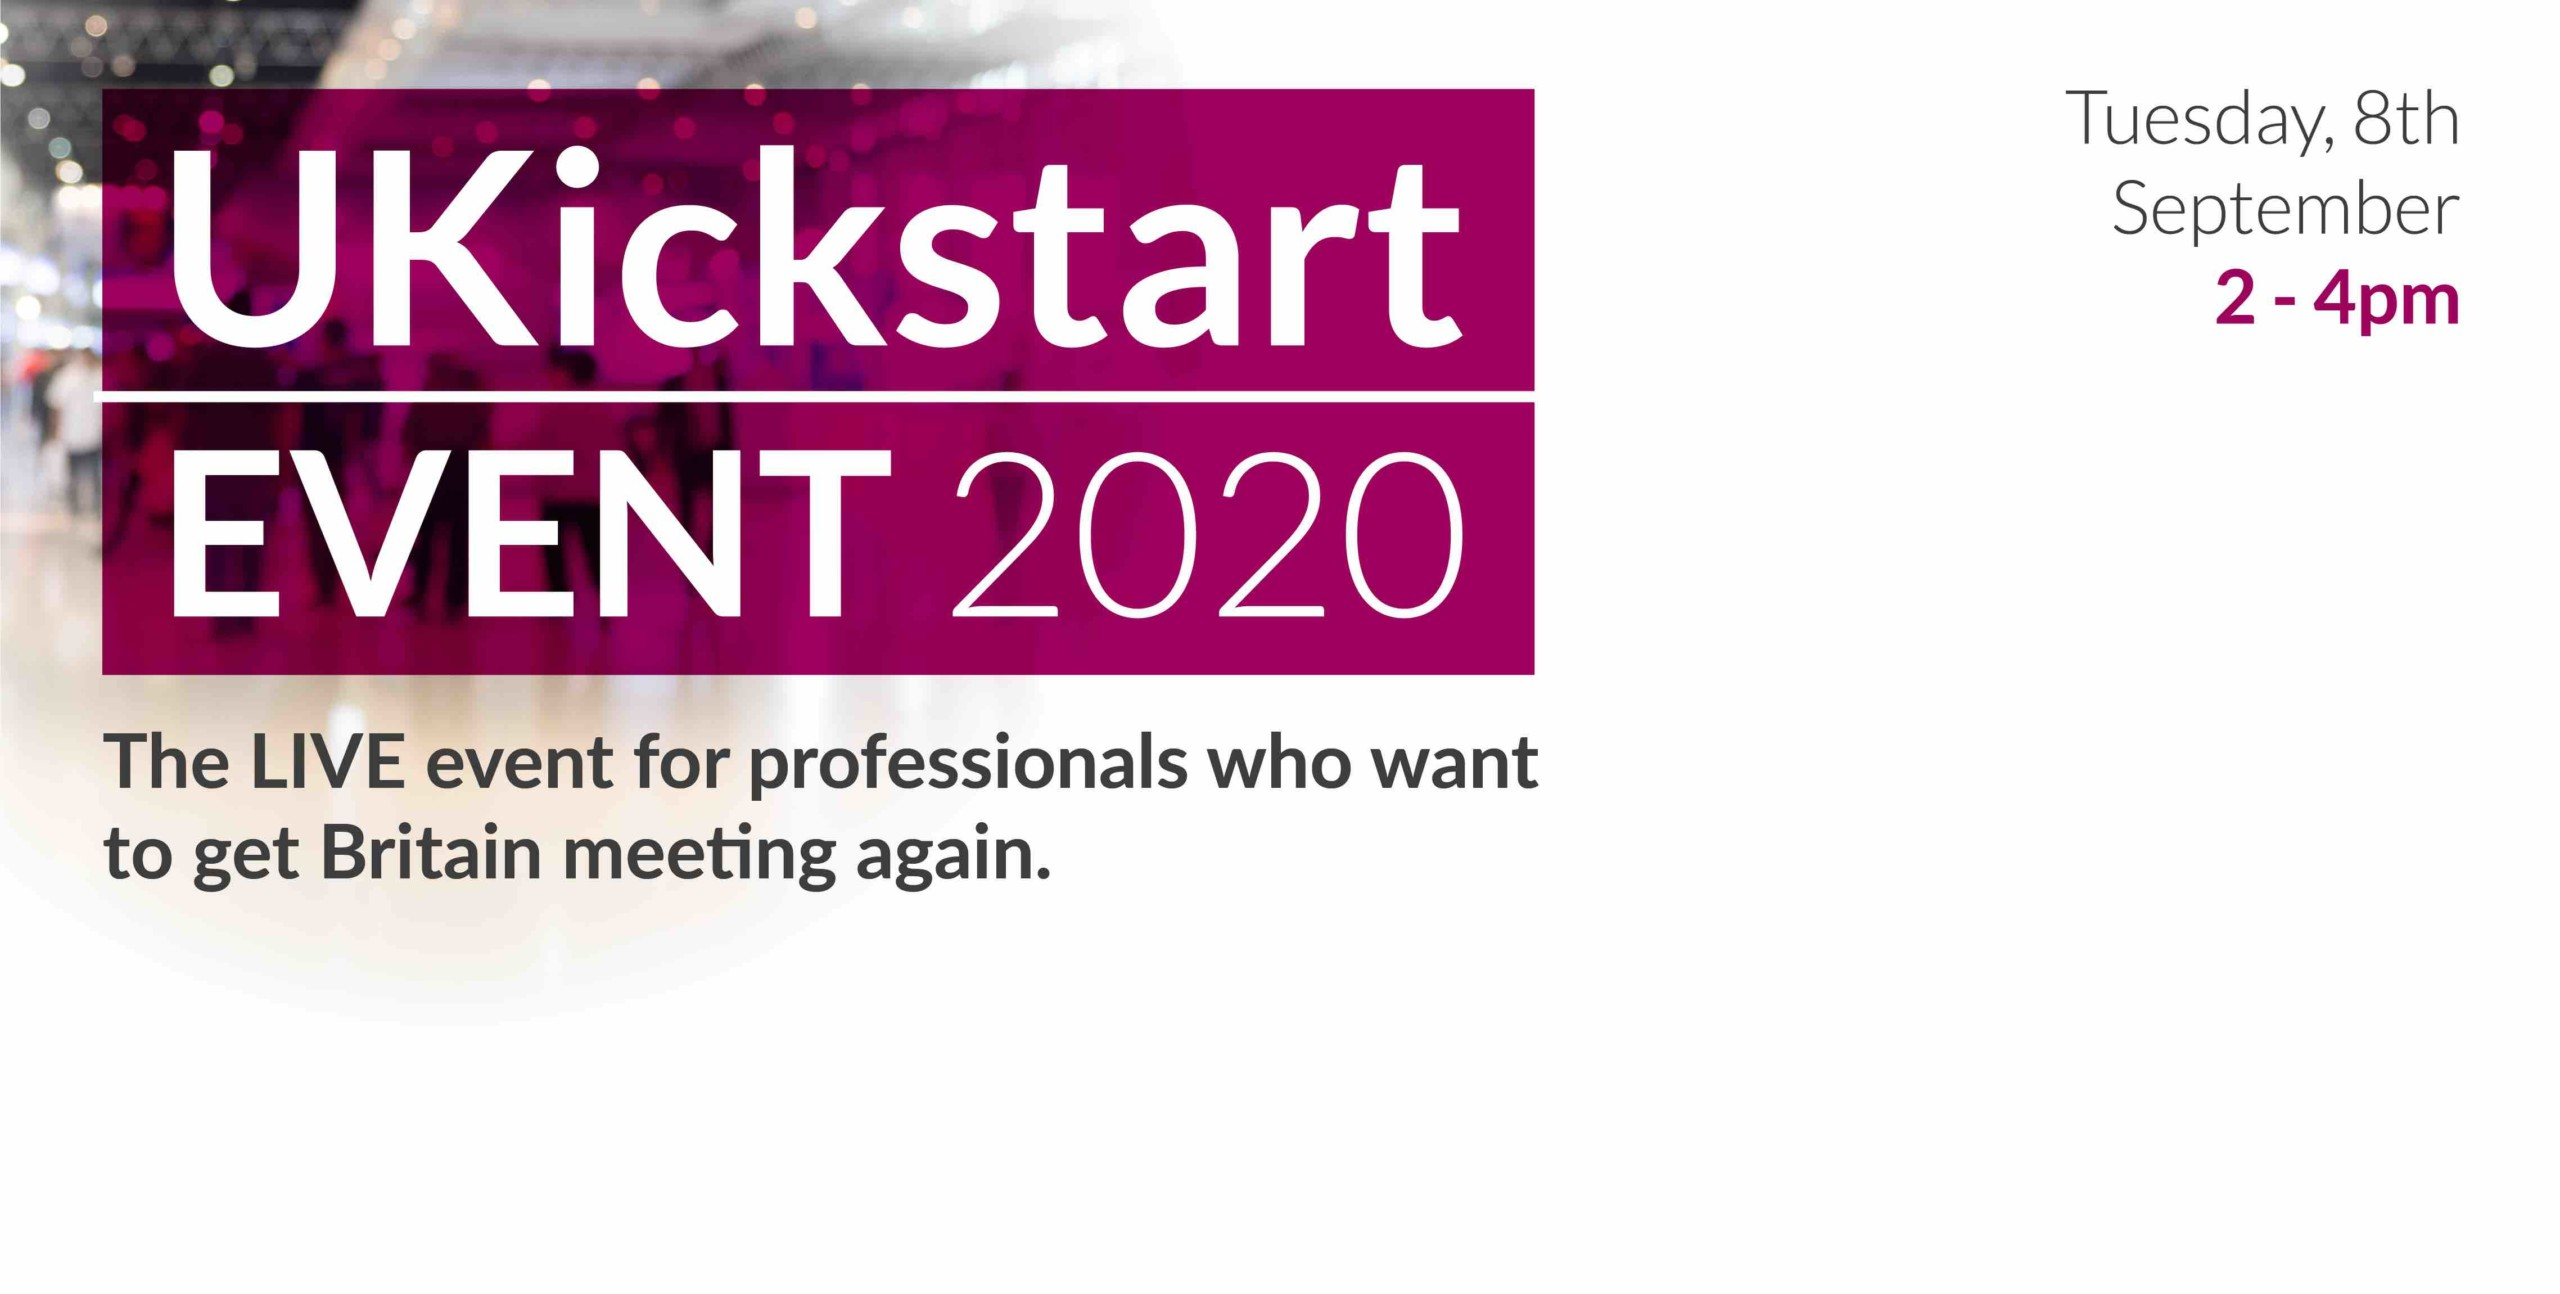 UKickstart Event 2020 unites UK events sector to kick-start the market